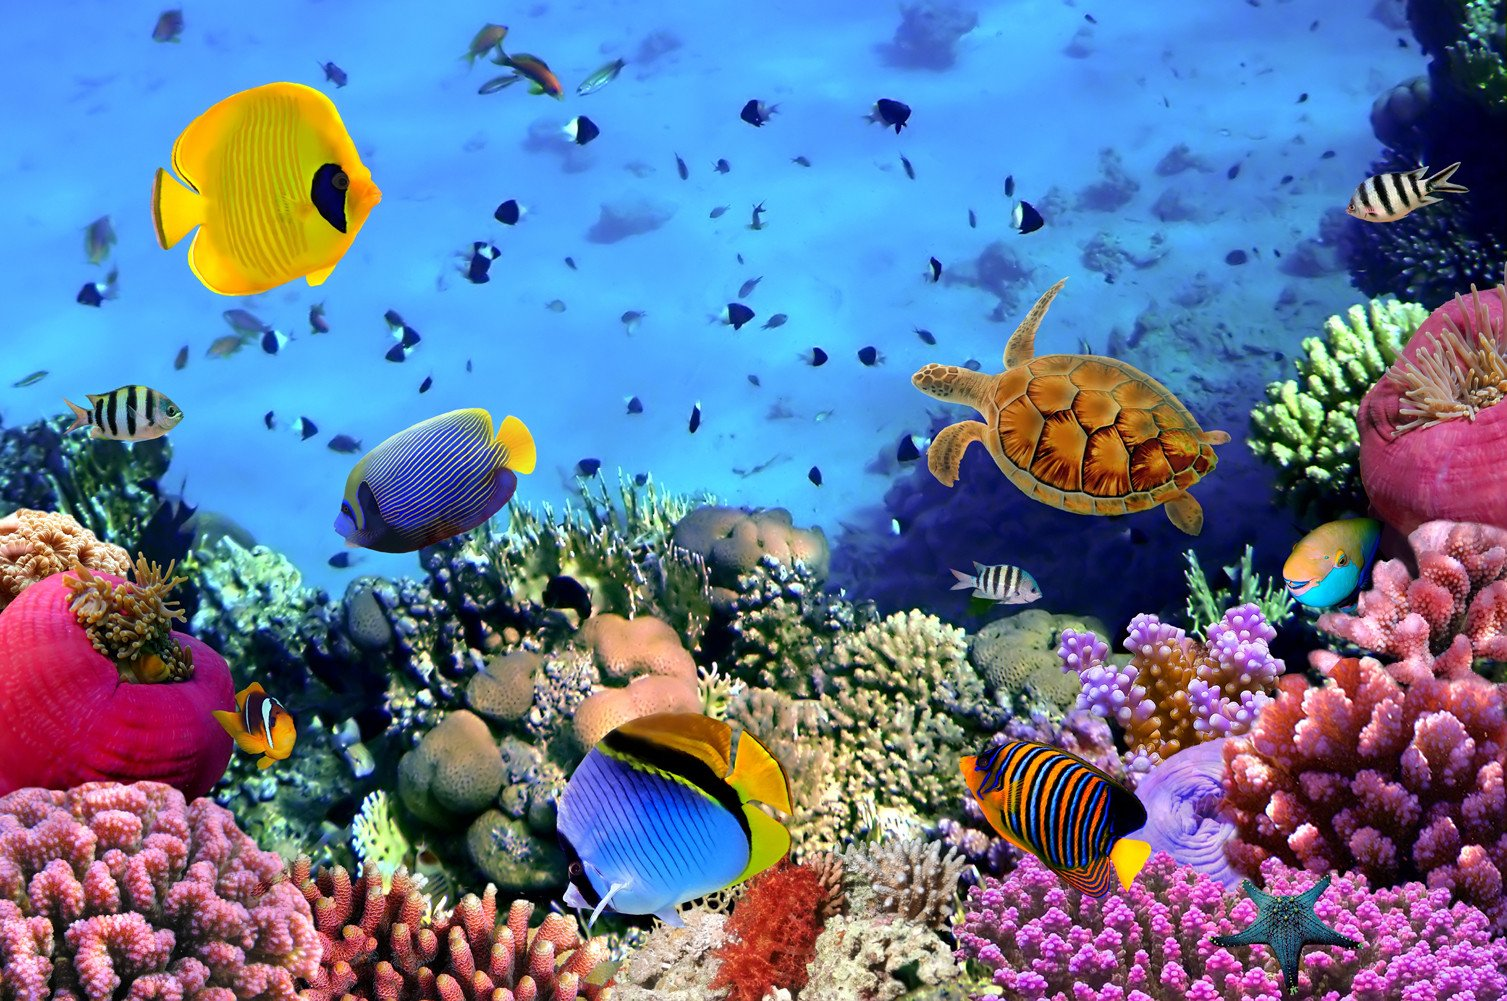 CHOIS Custom Film CF3057 Animal Fishes Tortoise Coral Reefs Glass Window Frosted 3' W by 2' H